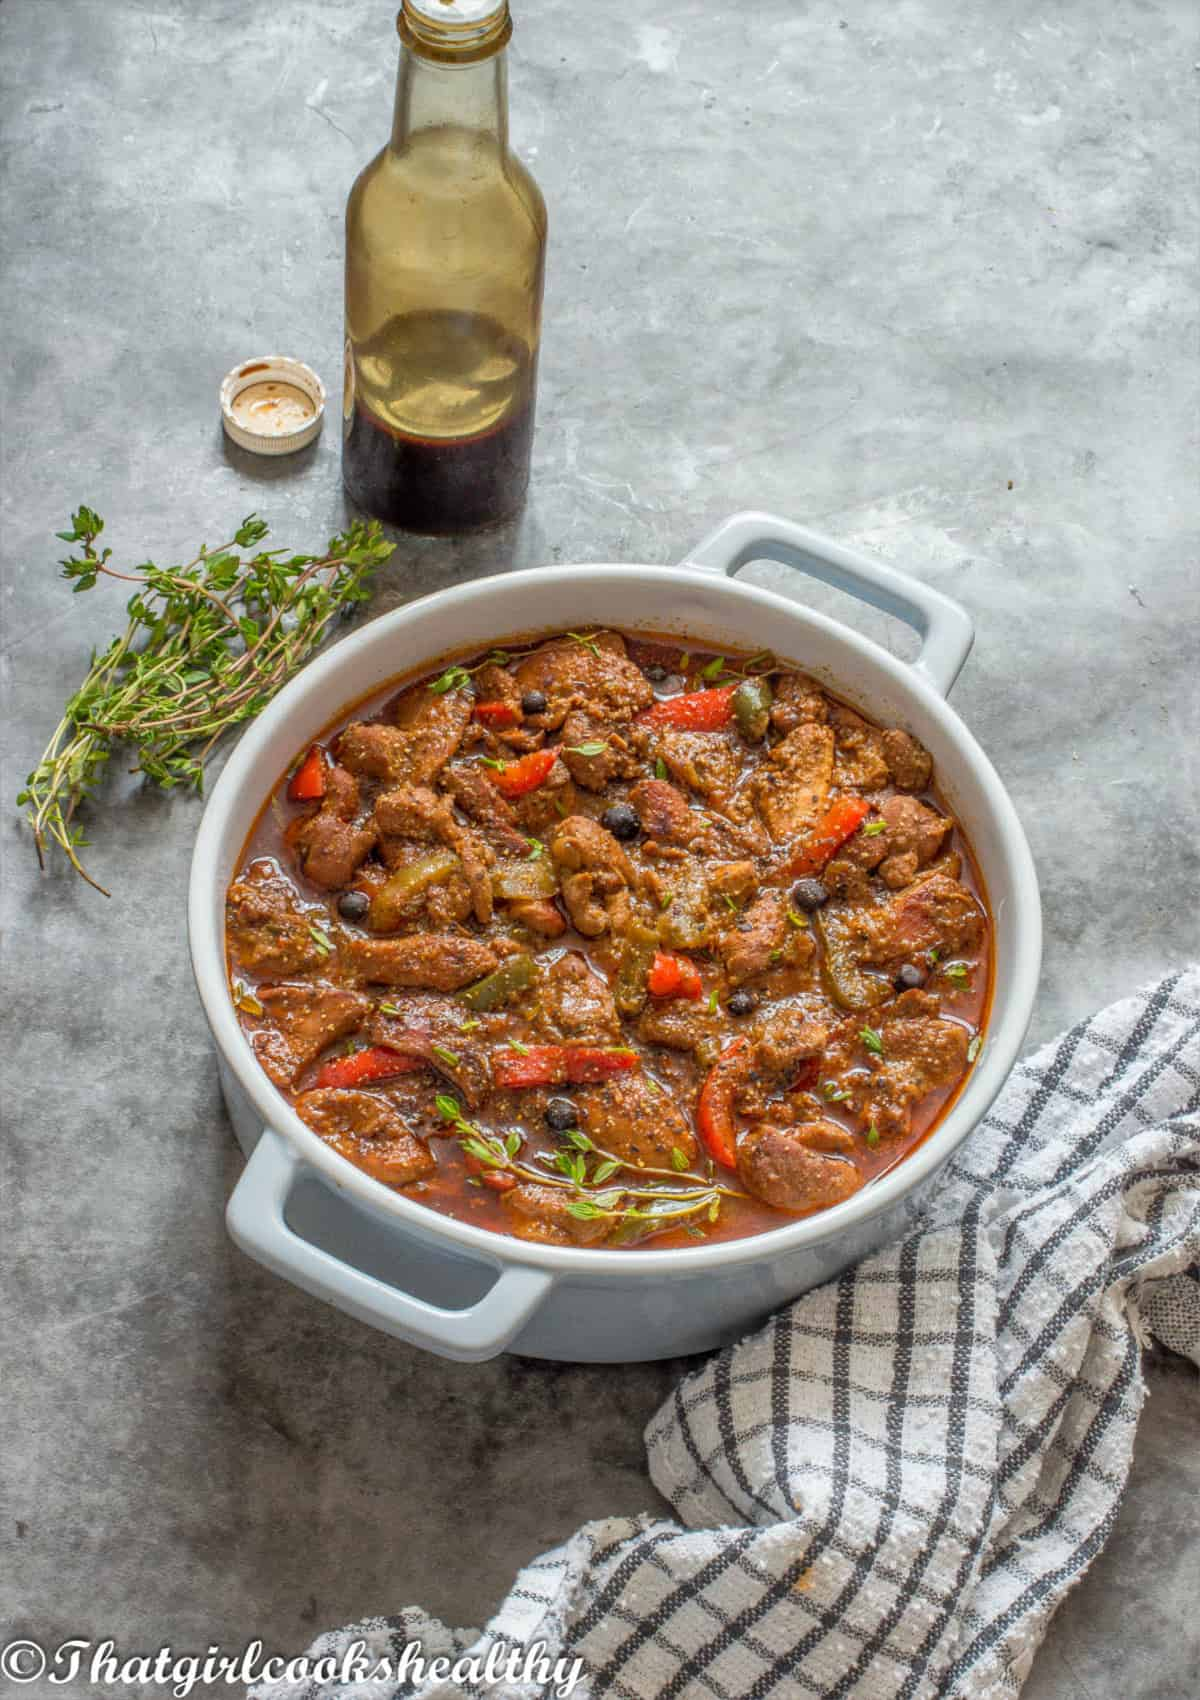 casserole dish with browning sauce